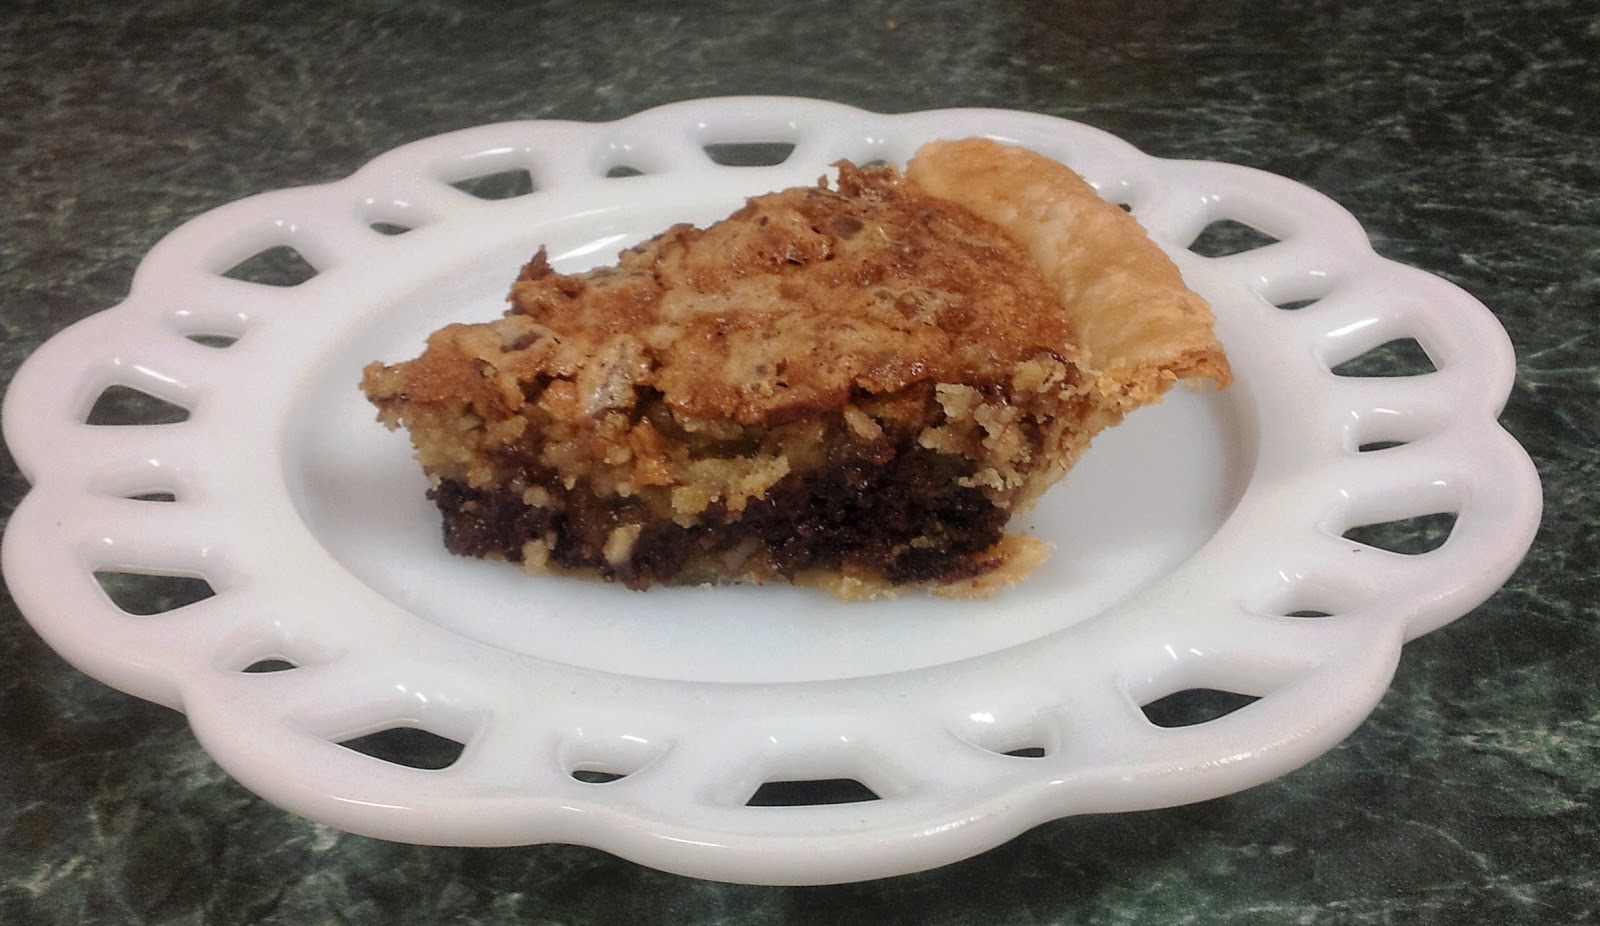 Debbi Does Dinner... Healthy & Low Calorie: Chocolate Chip Cookie Pie